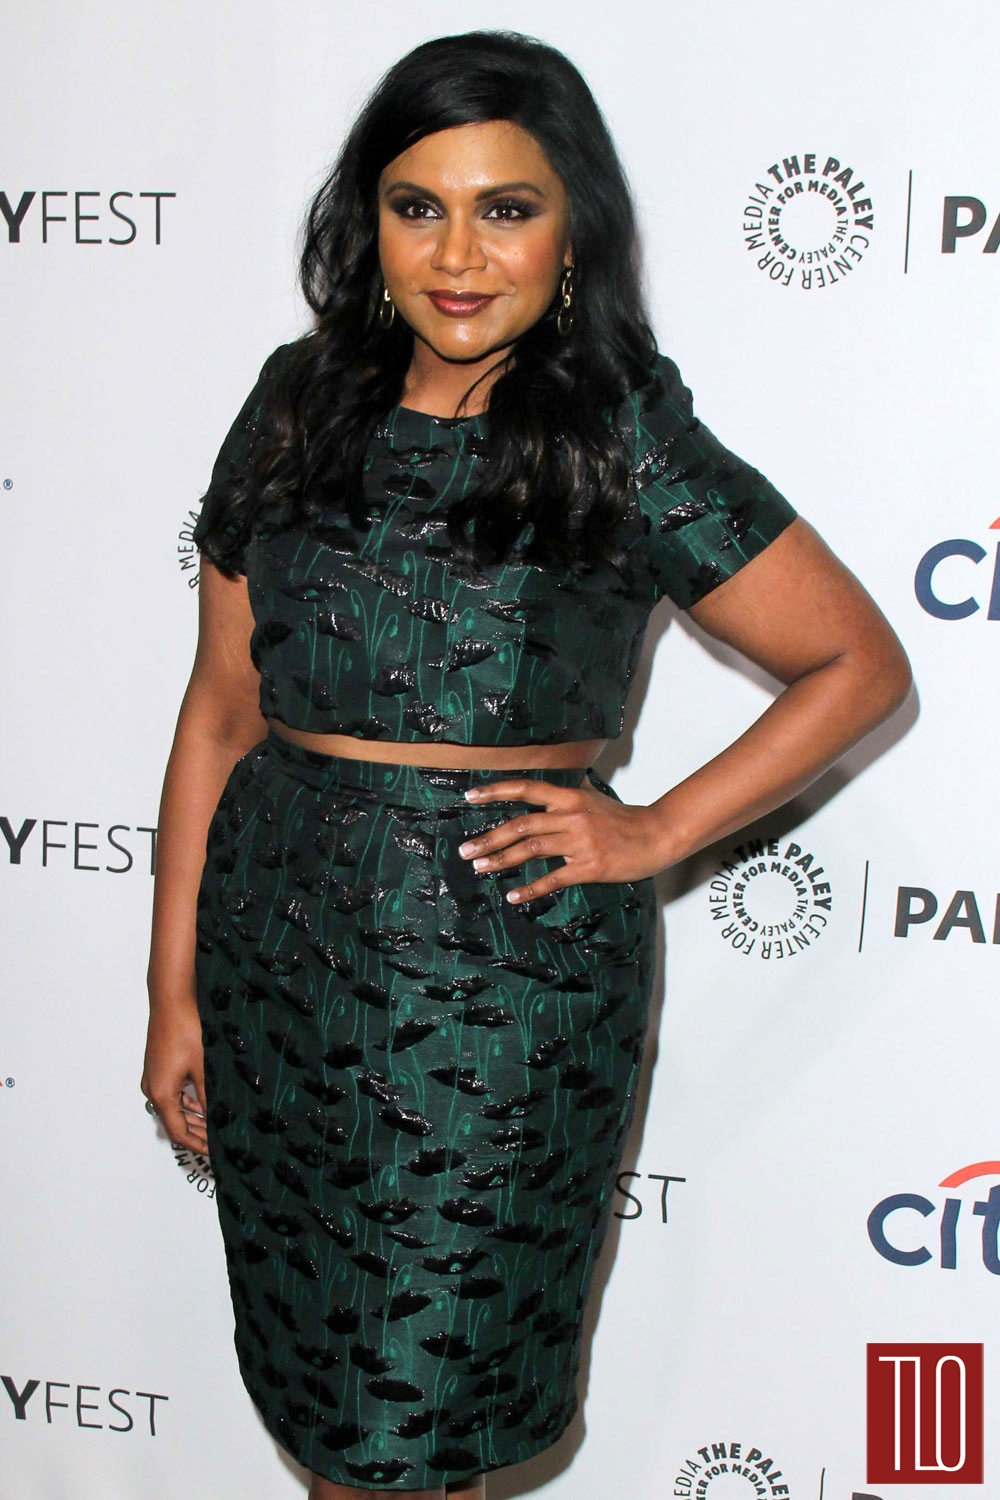 Mindy-Kaling-Topshop-2014-PaleyFest-Mindy-Project-Tom-LOrenzo-Site-TLO (1)